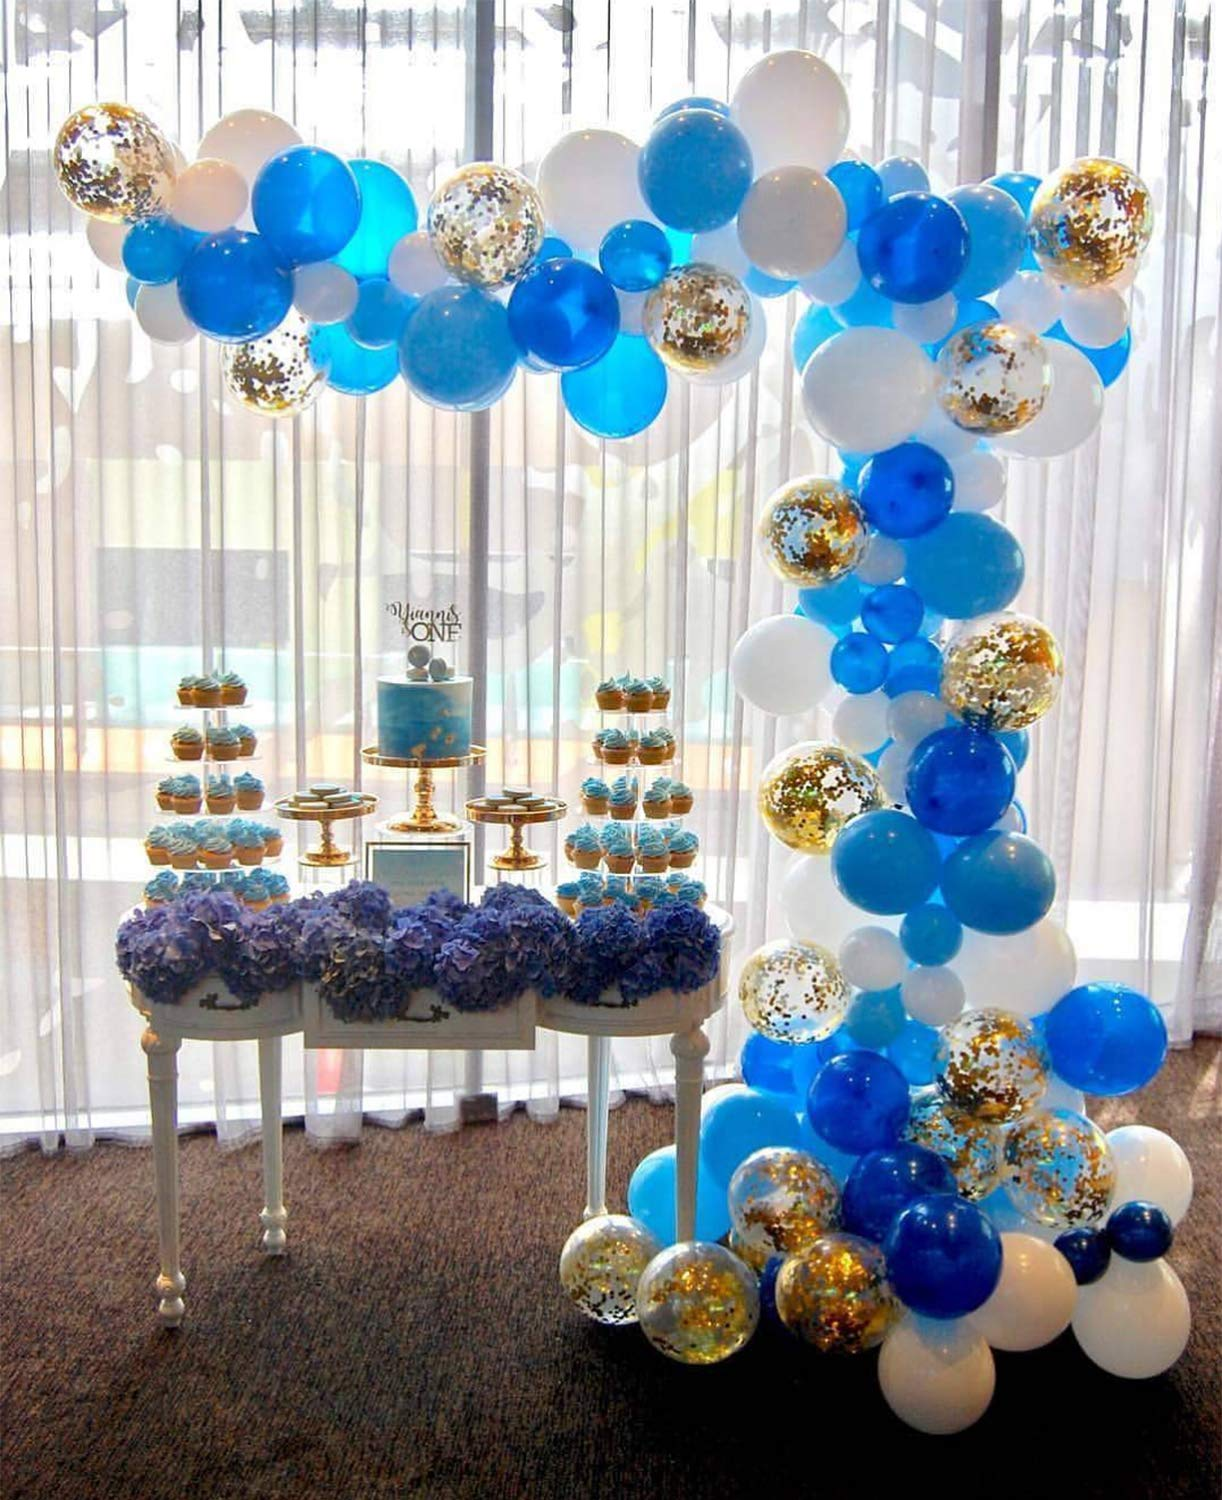 Putwo Blue Gold And White Balloons 70 Pcs 12 Inch Navy Light